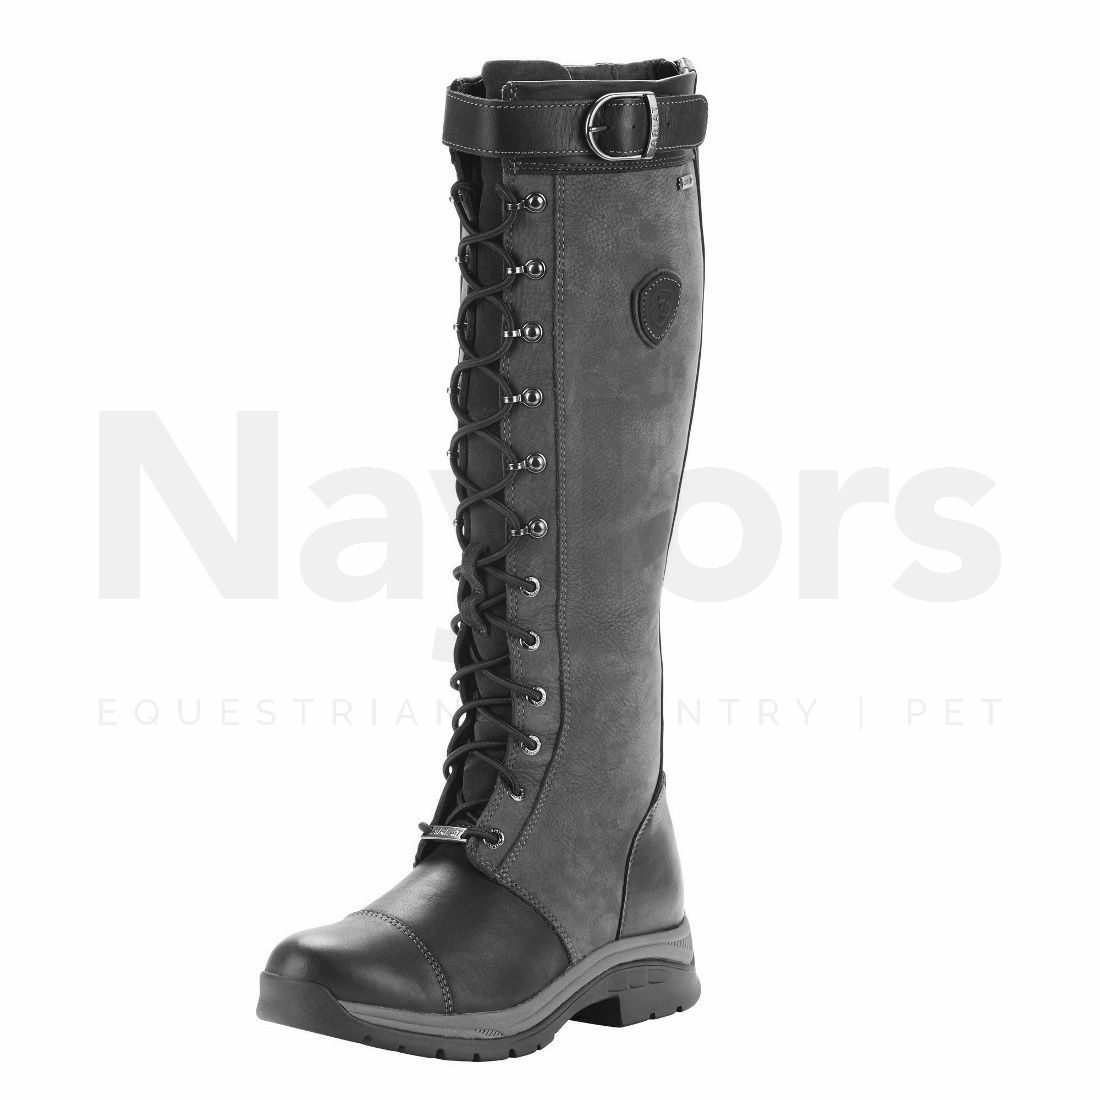 21df237b24f Ariat® Ladies Berwick GTX® Insulated Country Boots Black